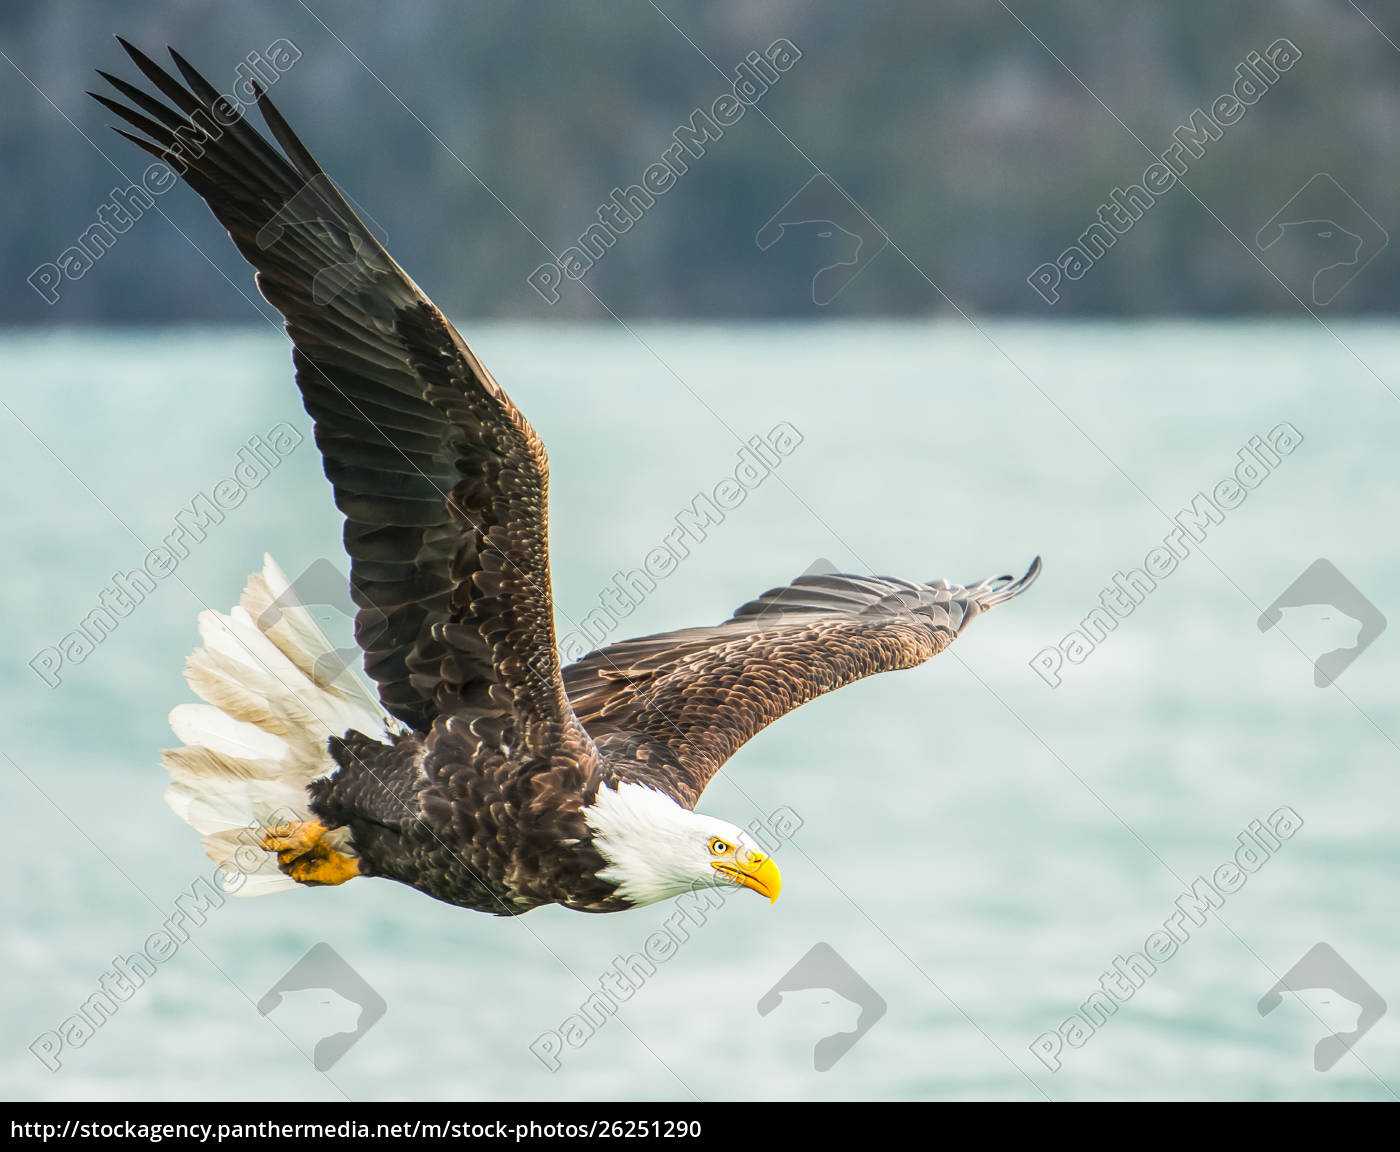 bald, eagle, (haliaeetus, leucocephalus), in, flight - 26251290